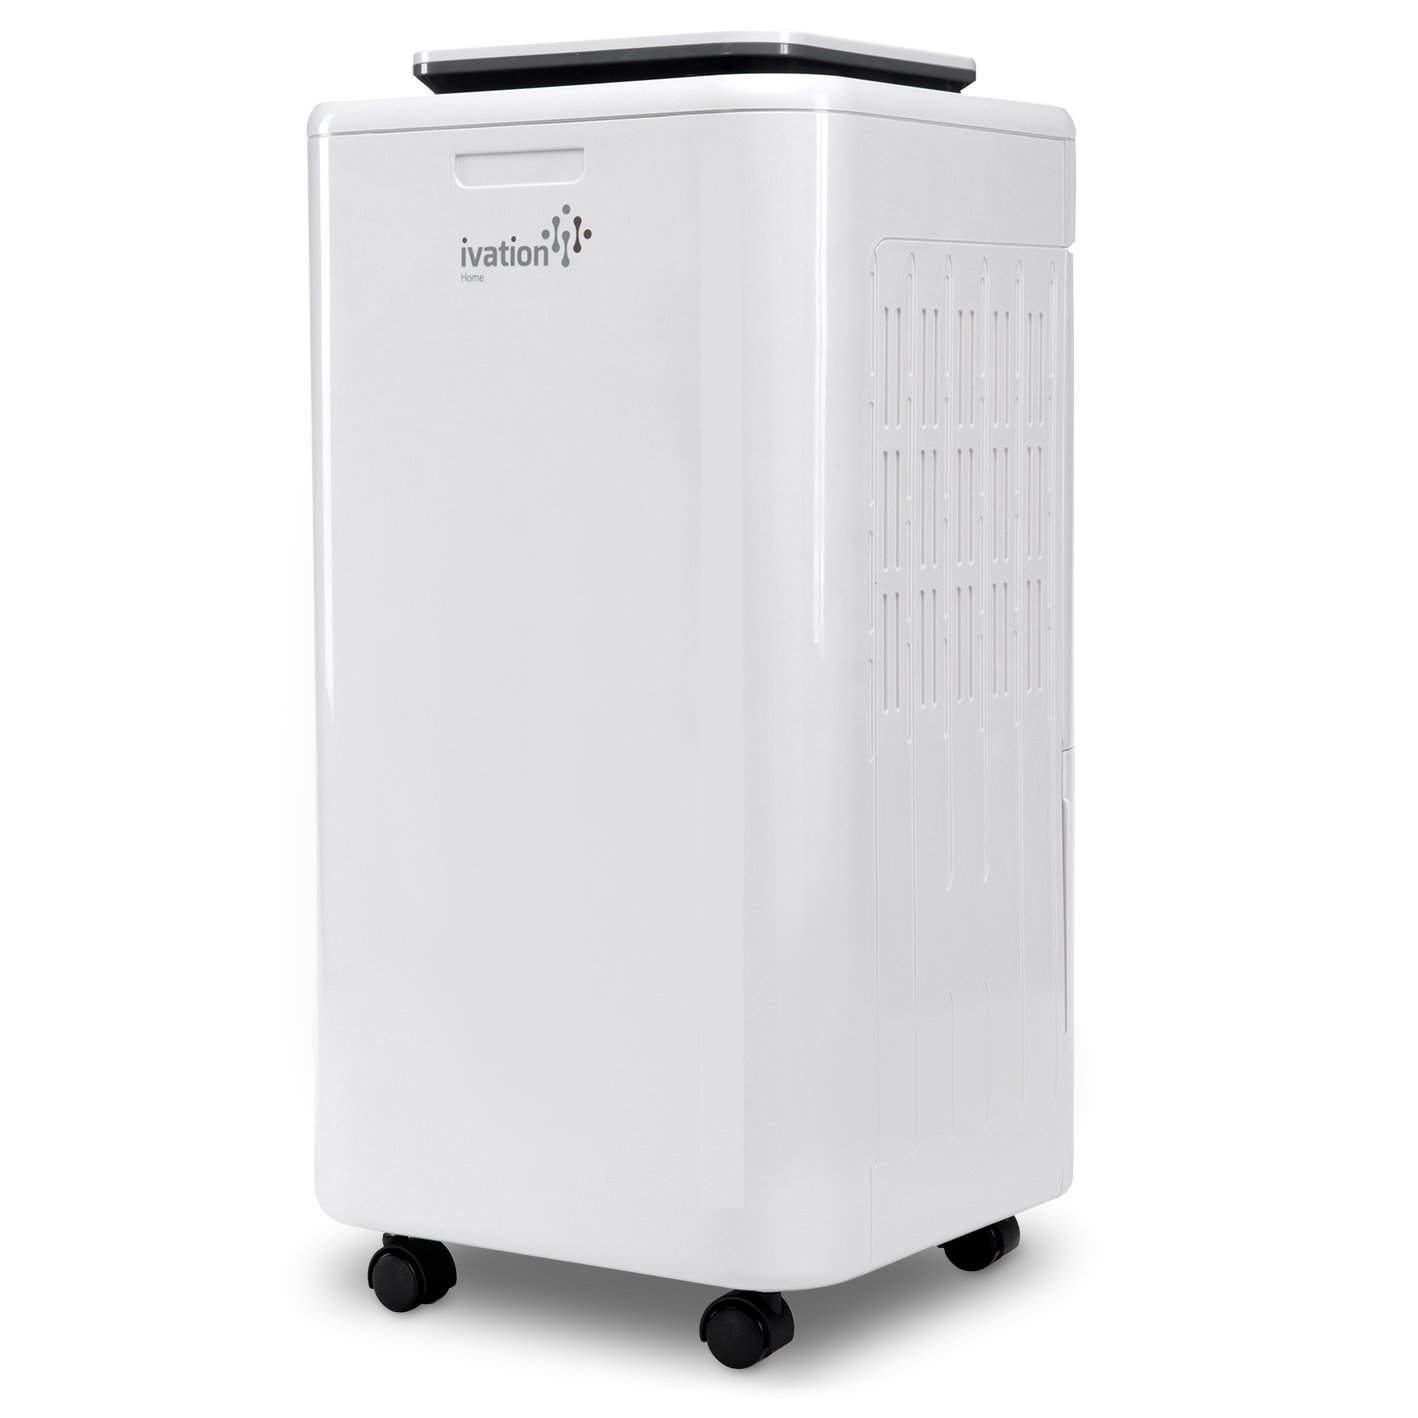 Ivation 11-Pint Small-Area Compressor Dehumidifier - With Continuous Drain Hose, Air Purifier & Ionizer for Smaller Spaces, Bathroom, Attic, Crawlspace and Closets - For Spaces Up To 216 Sq/Ft